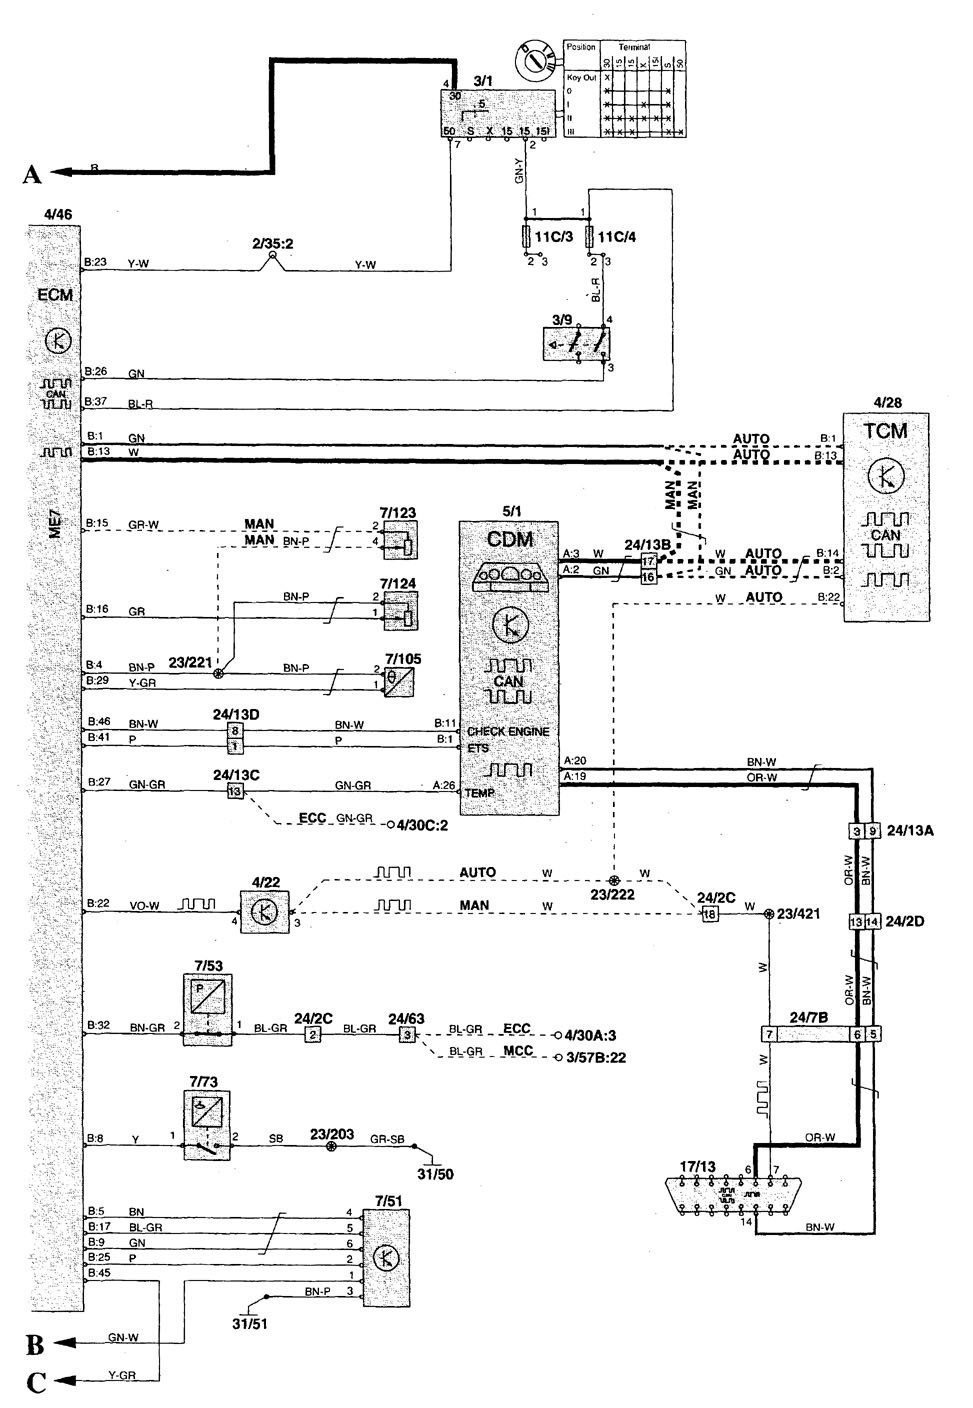 hight resolution of 1987 chevy c70 wiring diagram wiring diagram centre 1987 chevy c70 wiring diagram